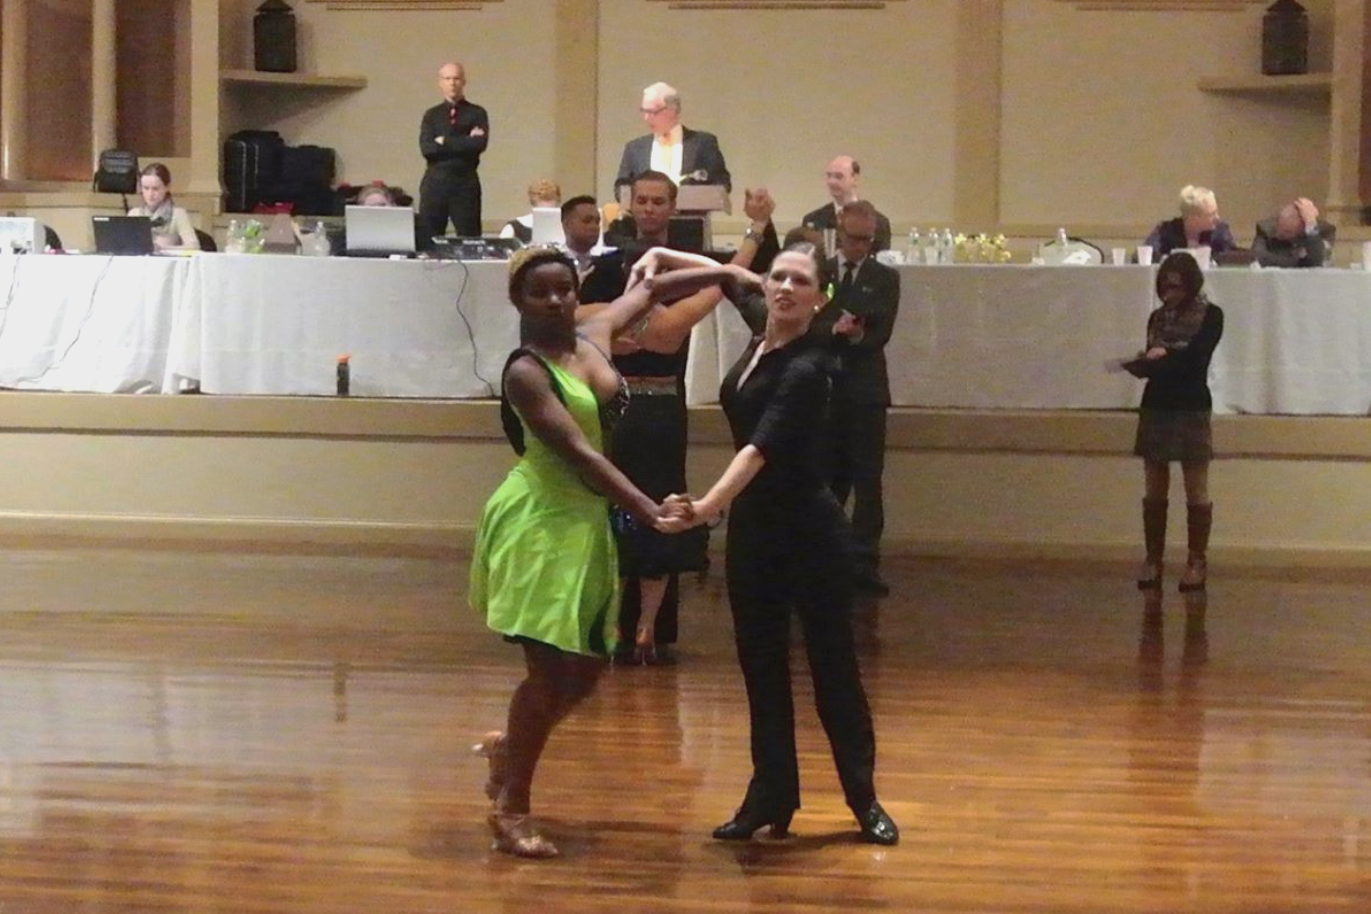 I am dancing with Danielle. I am wearing a black leotard, black pants, black practice shoes, and a green hair bow. Danielle is a green and navy blue Latin dress and Latin shoes. We are dancing the last la passe in our routine.